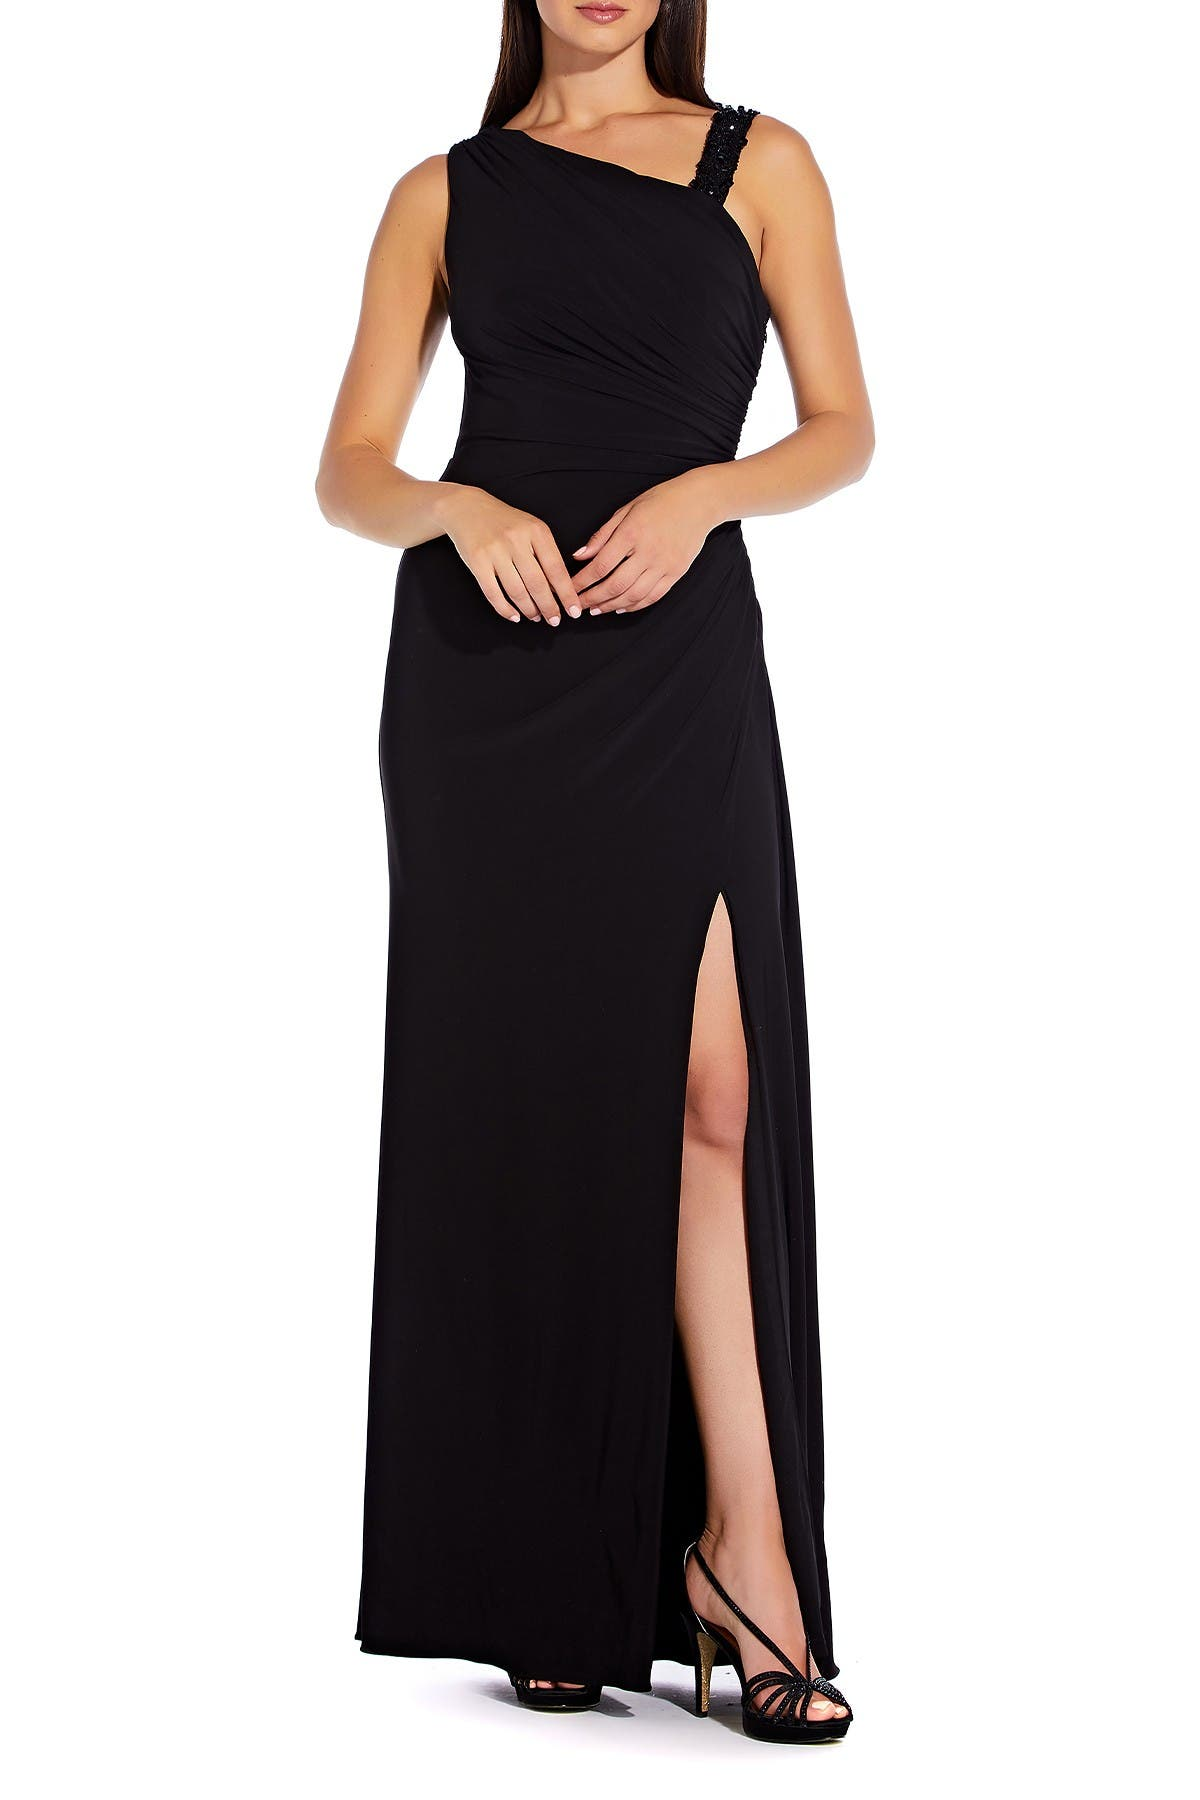 Image of Adrianna Papell Asymmetrical Neck Vent Dress